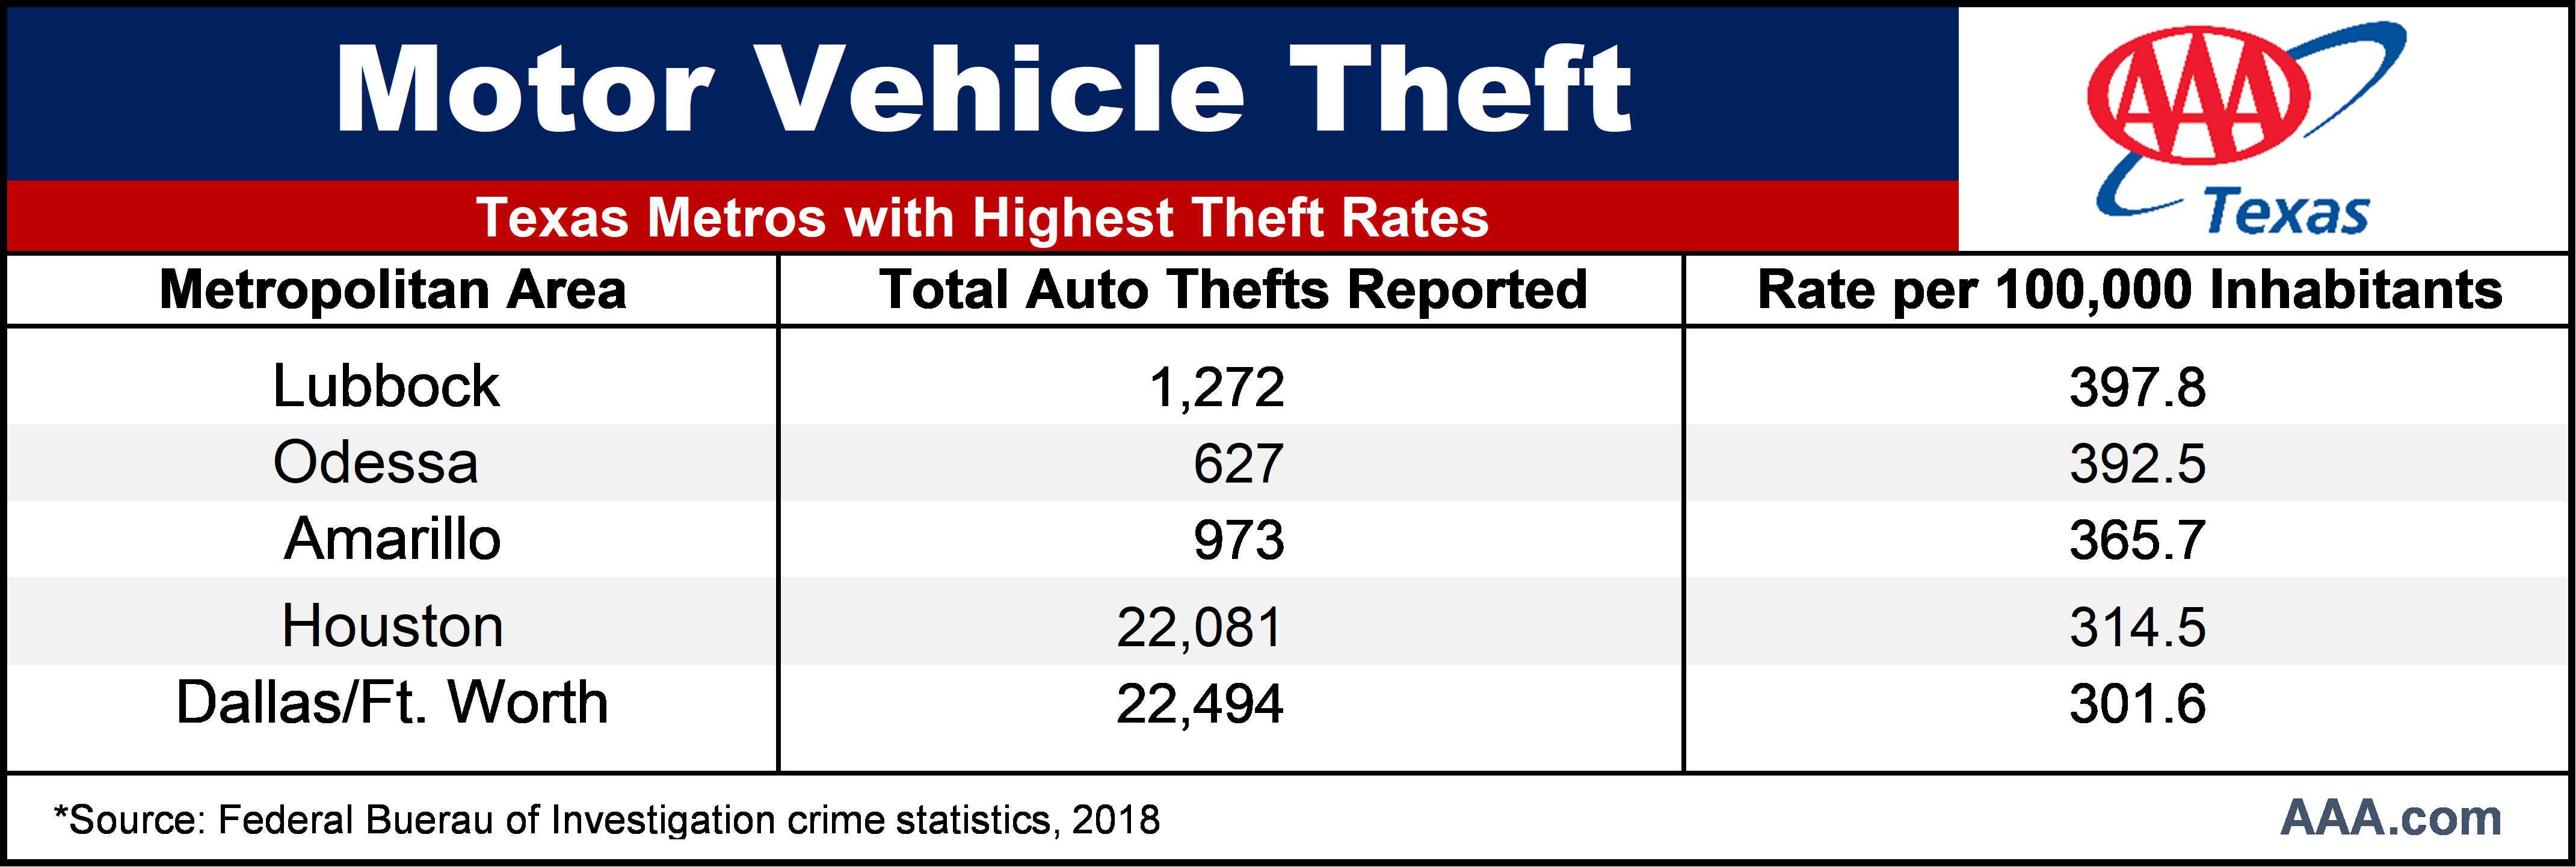 TX Motor Vehicle Theft Rates 2018_july 2020